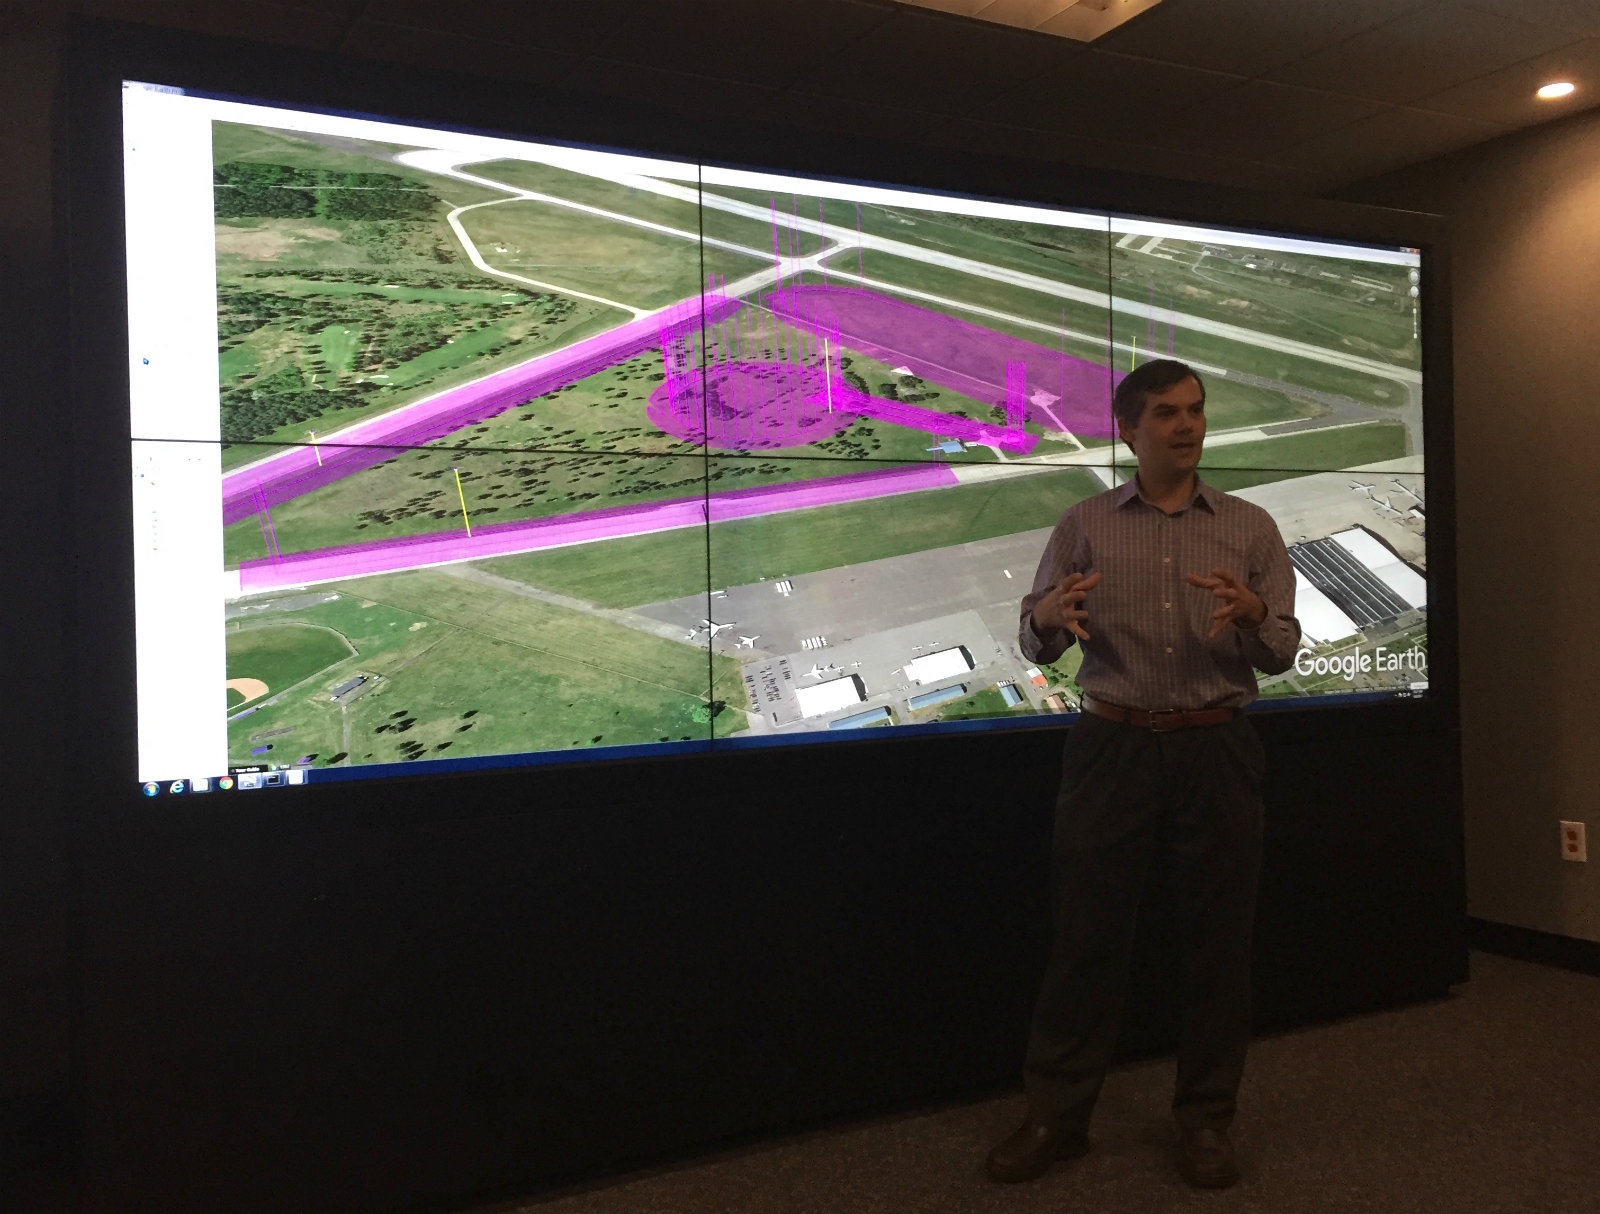 At NASA's Ames Research Center in Mountain View, Joey Rios, the drone traffic management project's technical lead, demonstrates how multiple drones flying close together can avoid colliding.